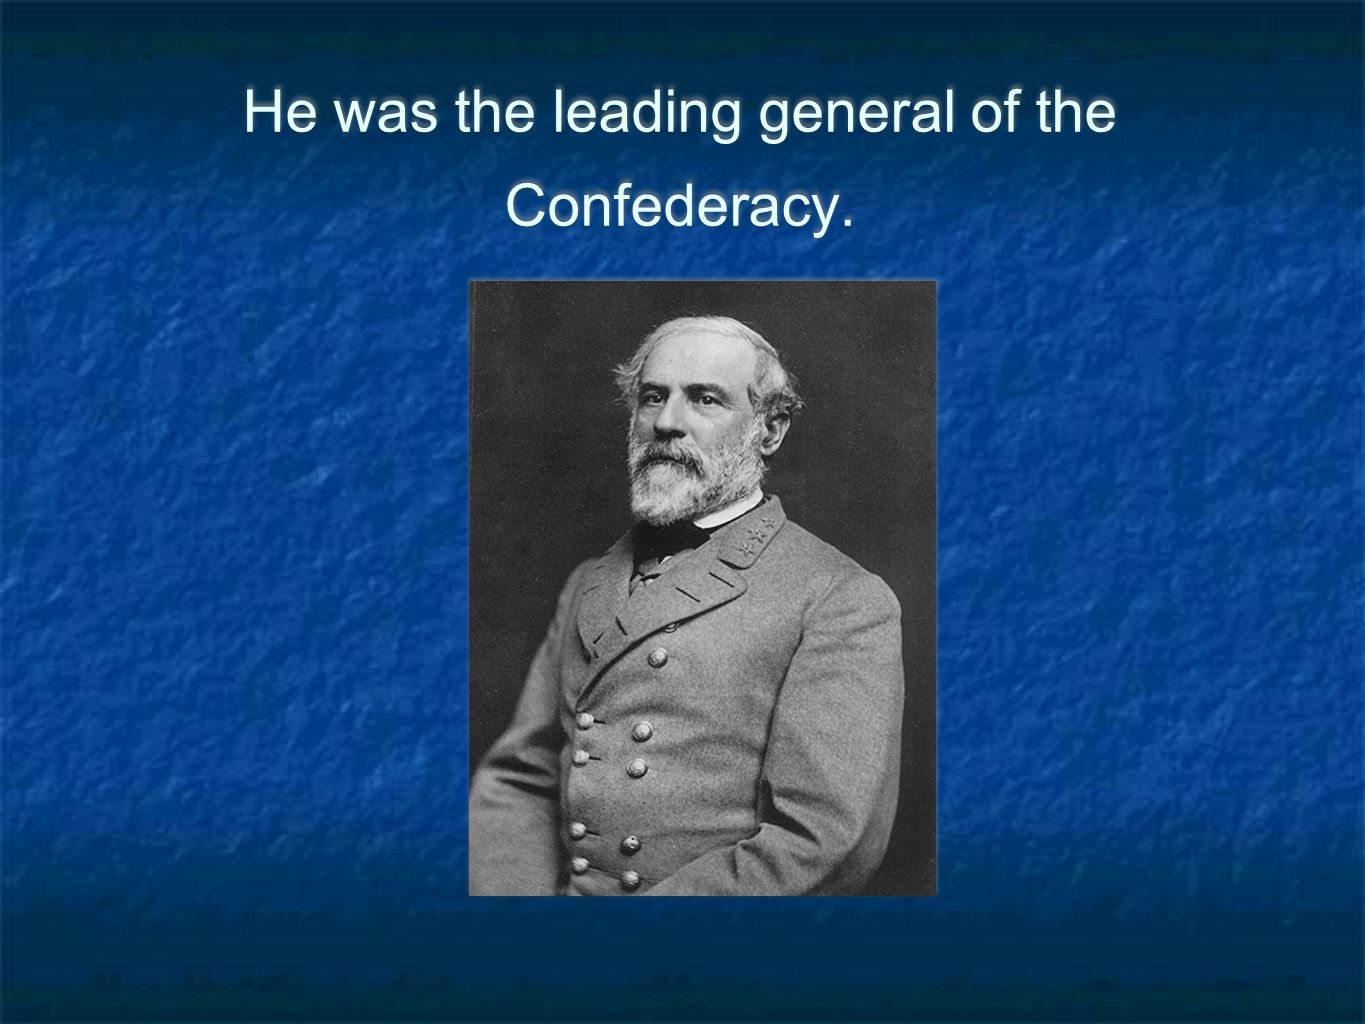 He was the leading general of the Confederacy.